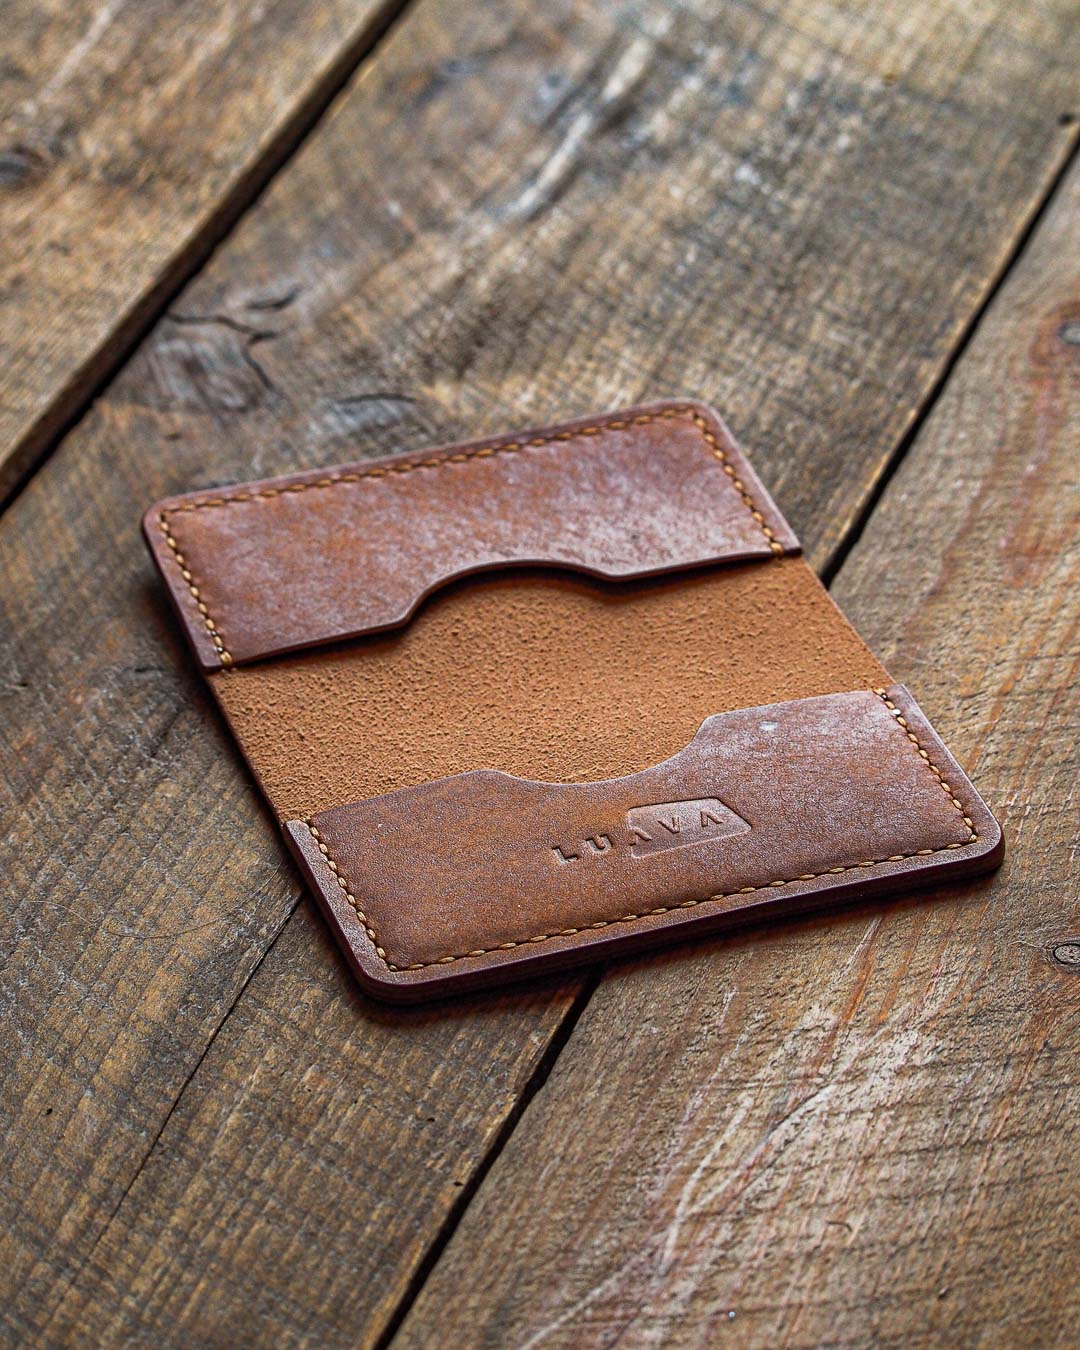 Luava handmade leather wallet handcrafted journeyman card holder cardholder pecos raw whiskey back open